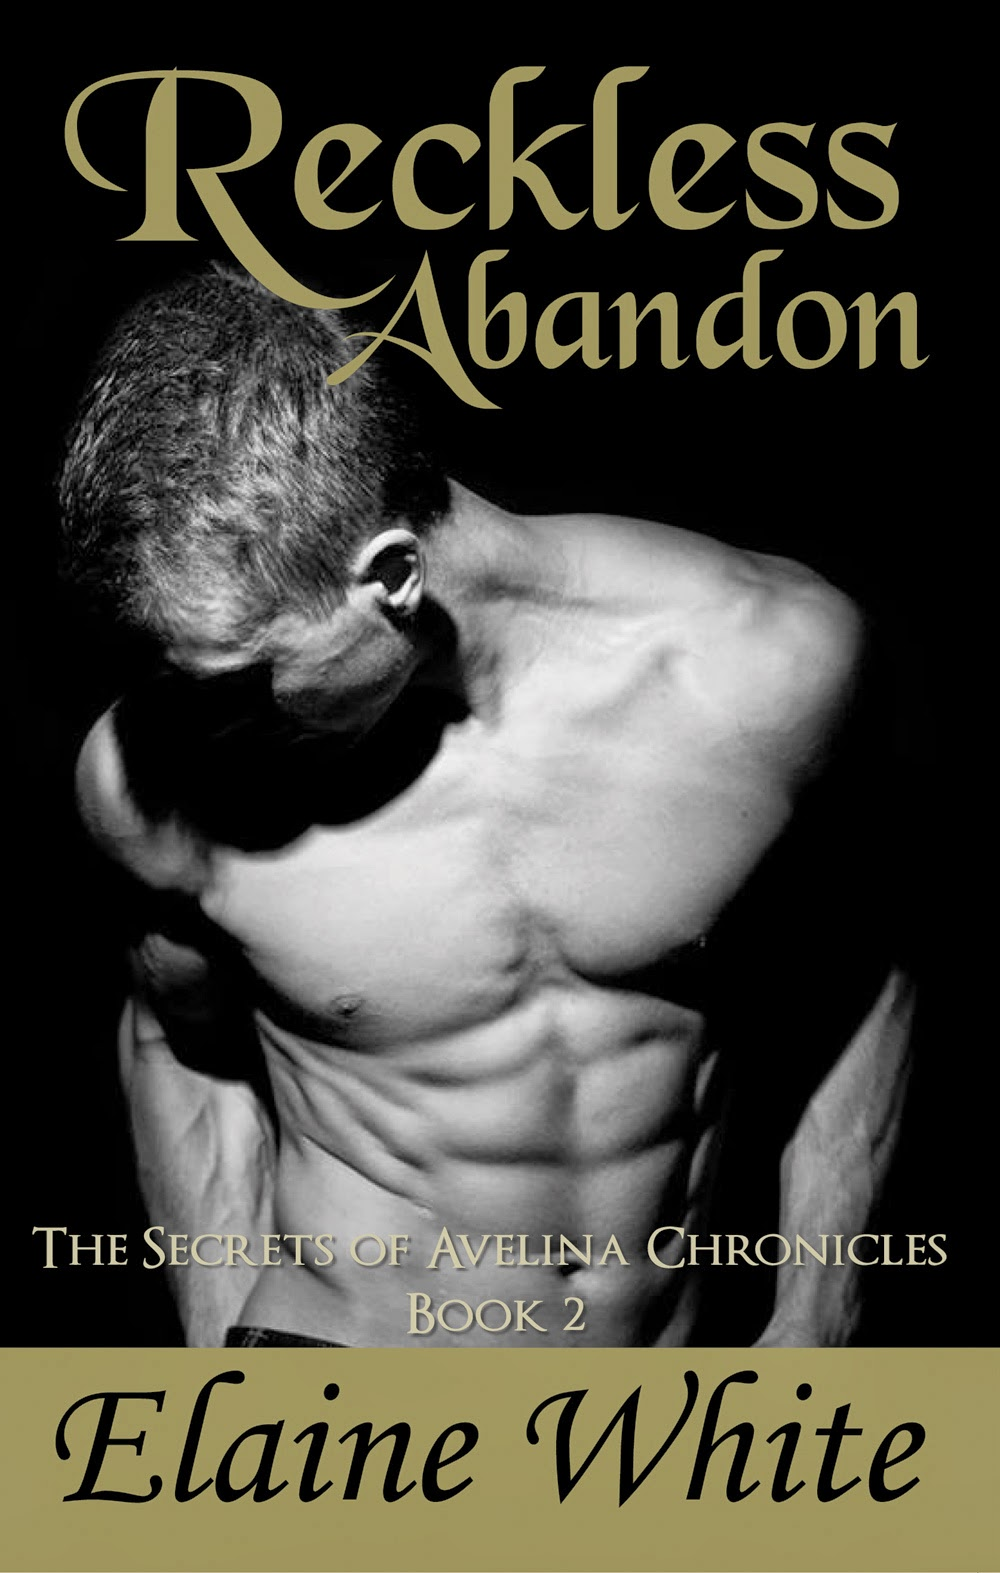 Reckless Abandon (The Secrets of Avelina Chronicles, Book 2)